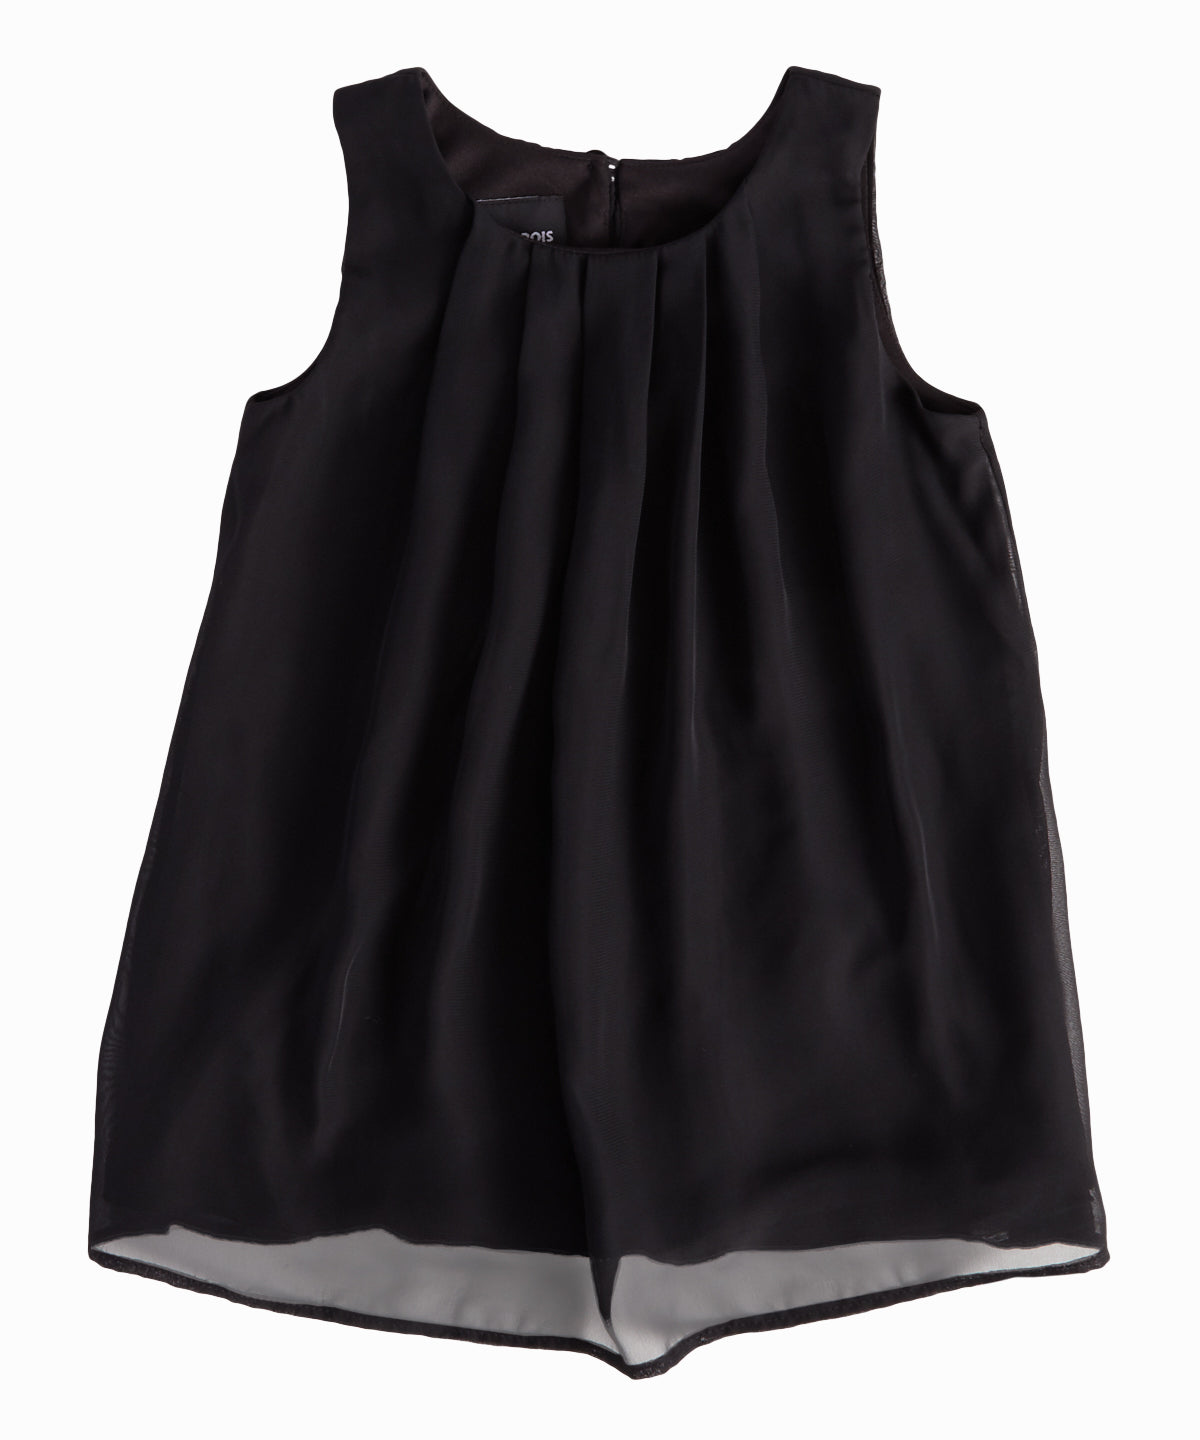 Sleeveless Chiffon Black Top